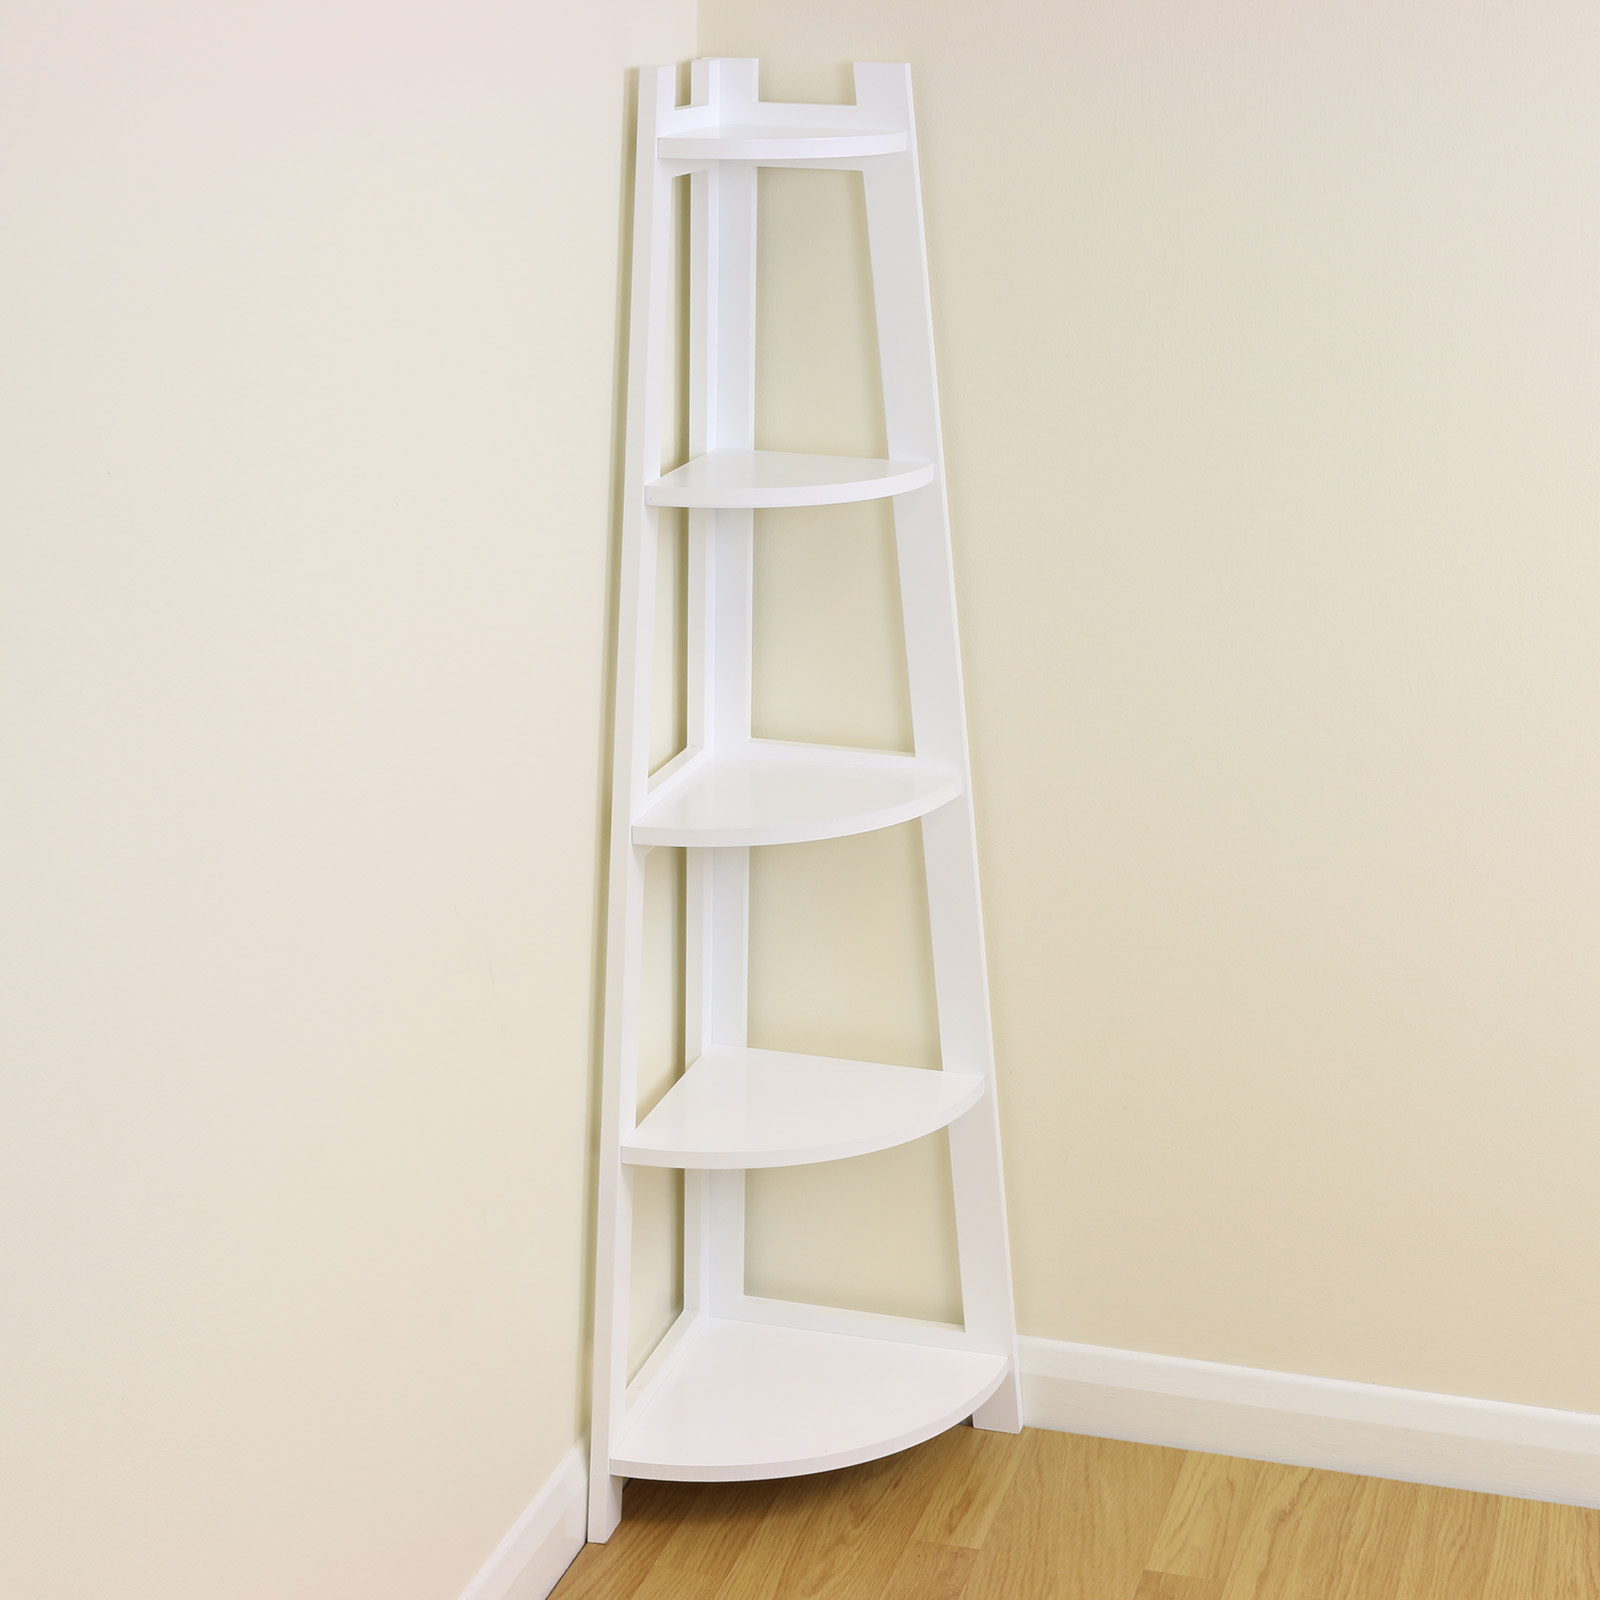 White 5 tier tall corner shelf shelving unit display stand - White bathroom corner shelf unit ...